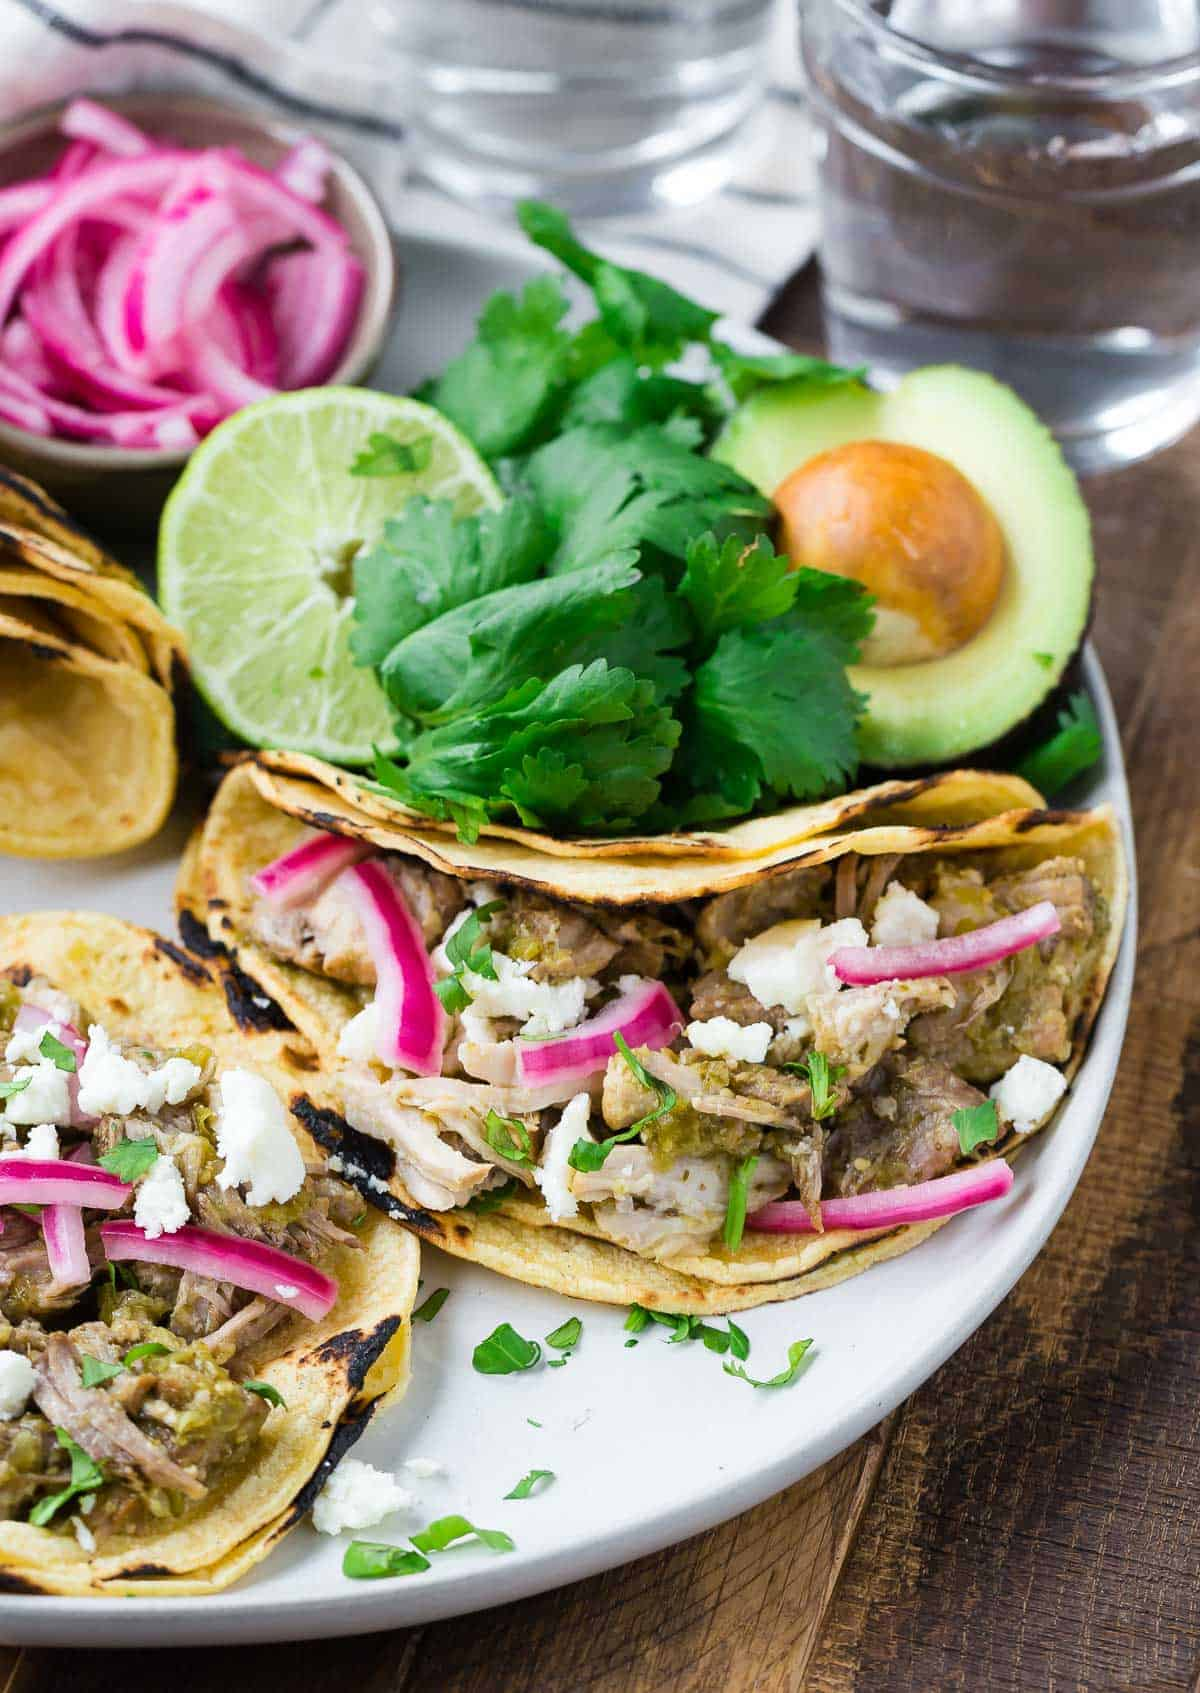 Pork tacos on a plate with cilantro, avocados, and pickled red onions.